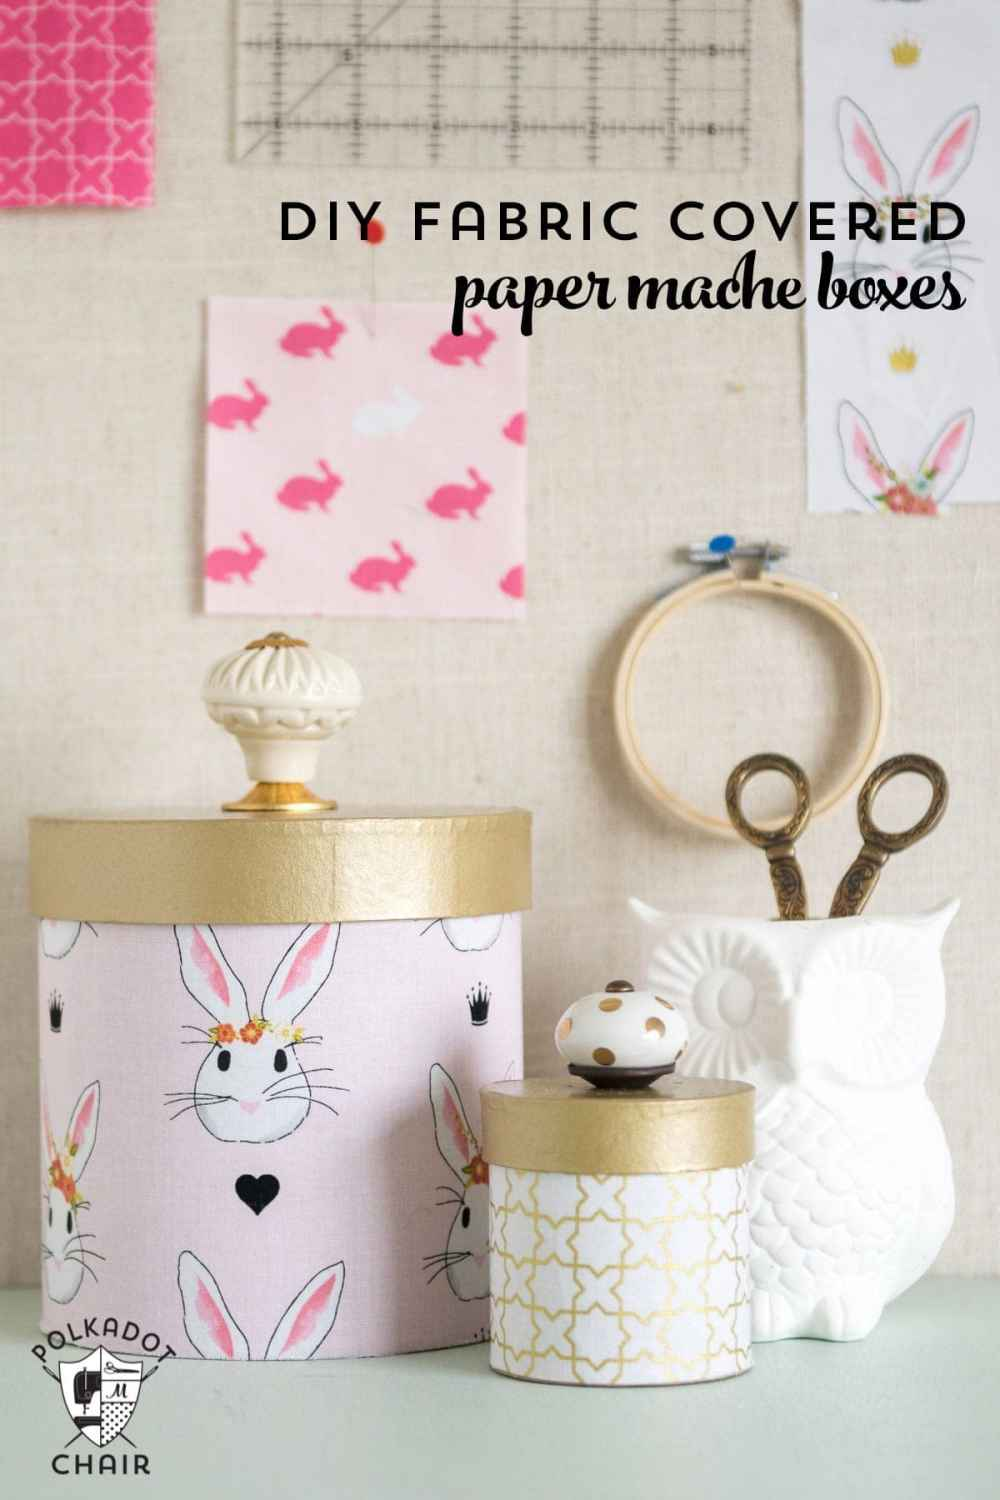 medium resolution of learn how to cover paper mache boxes with fabric to make these cute diy storage containers